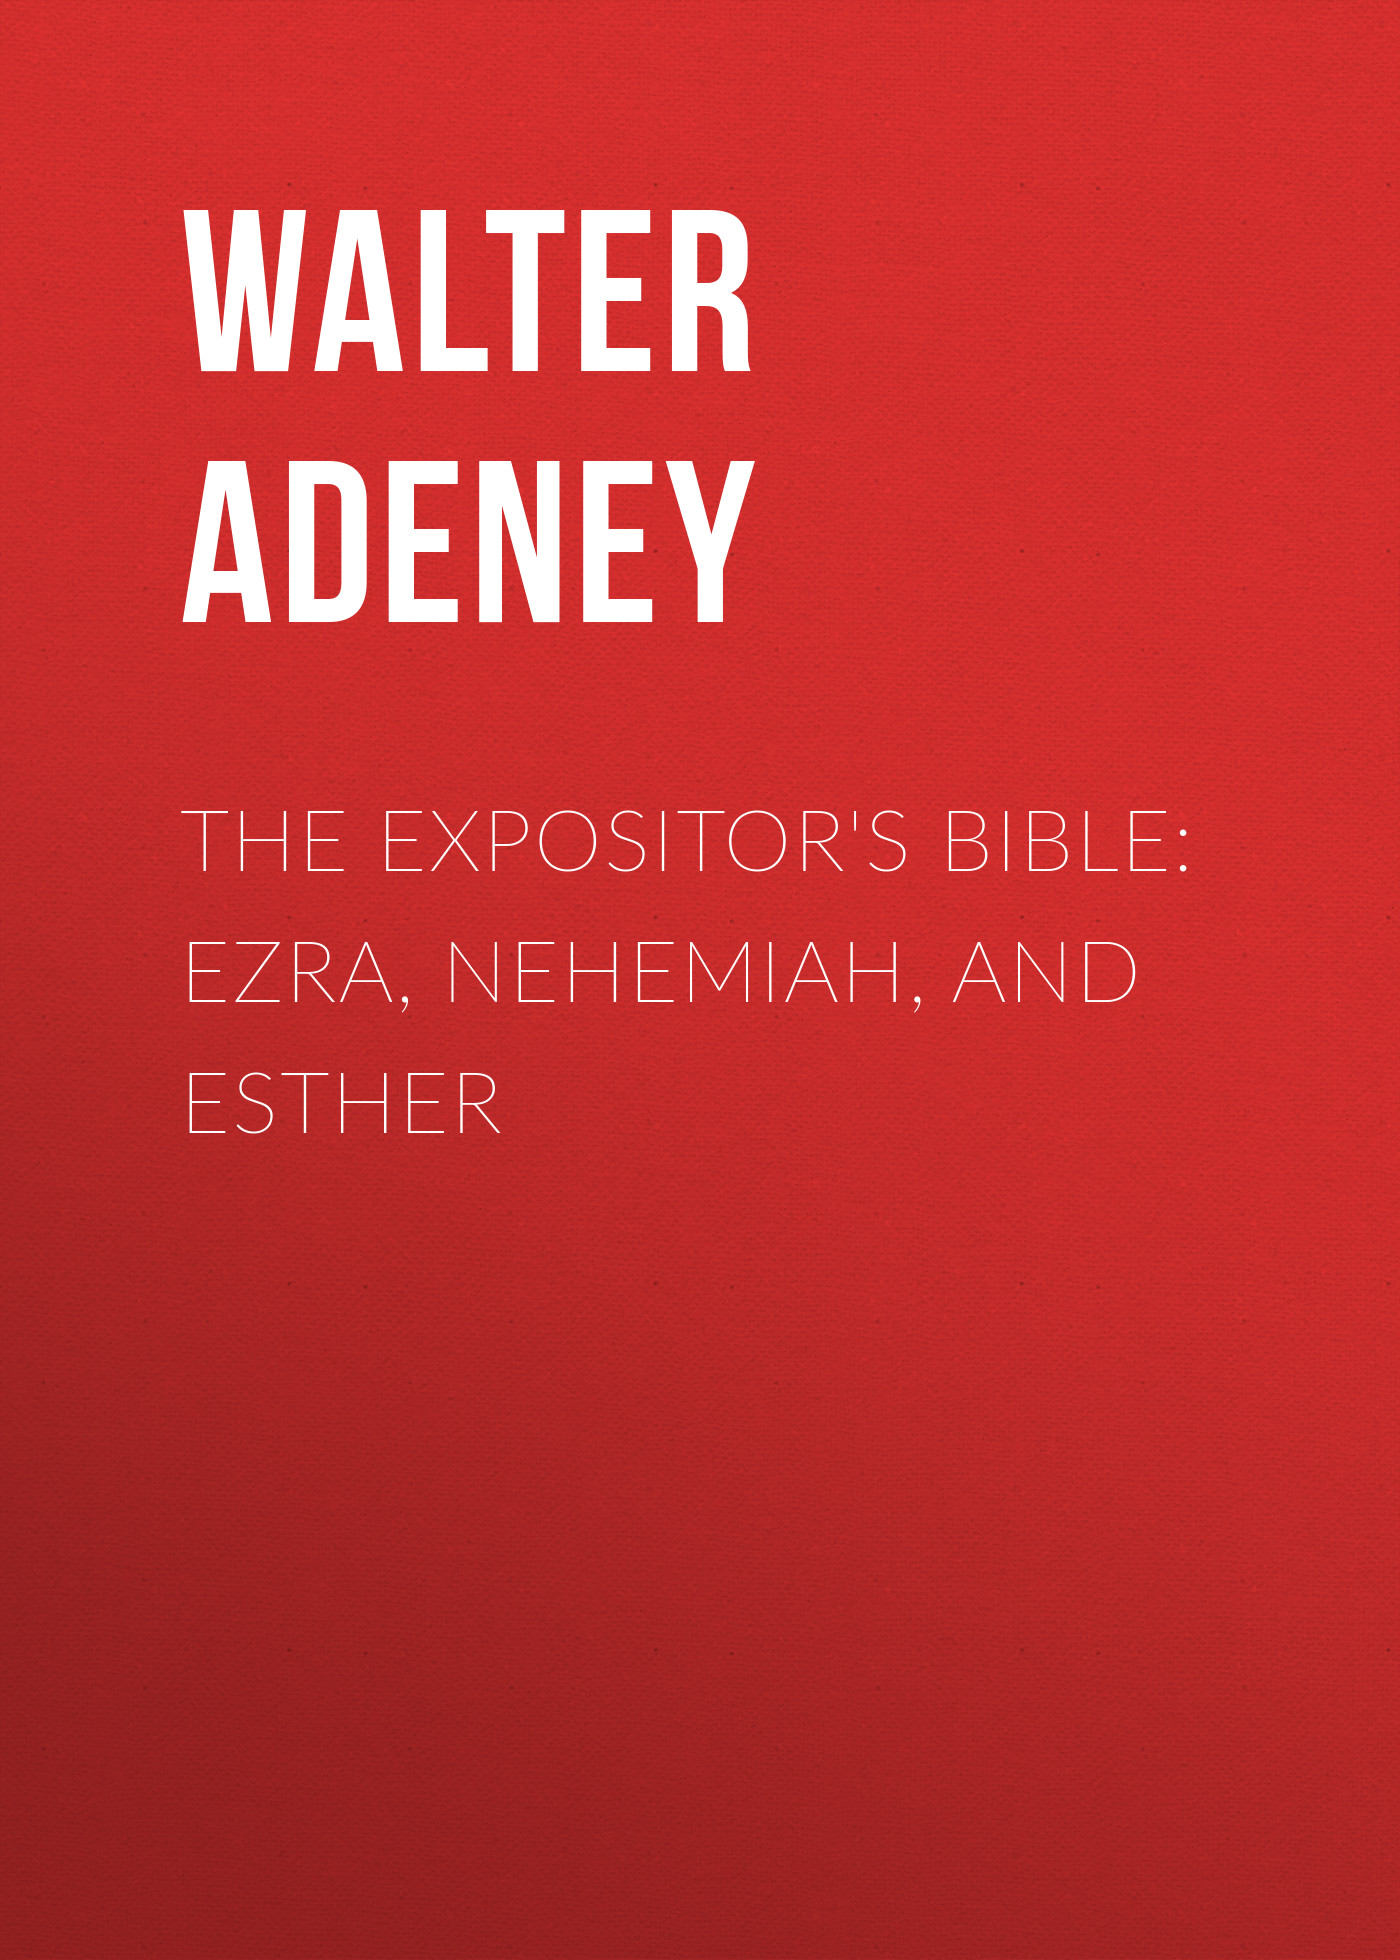 Adeney Walter Frederic The Expositor's Bible: Ezra, Nehemiah, and Esther kummer frederic arnold the ivory snuff box